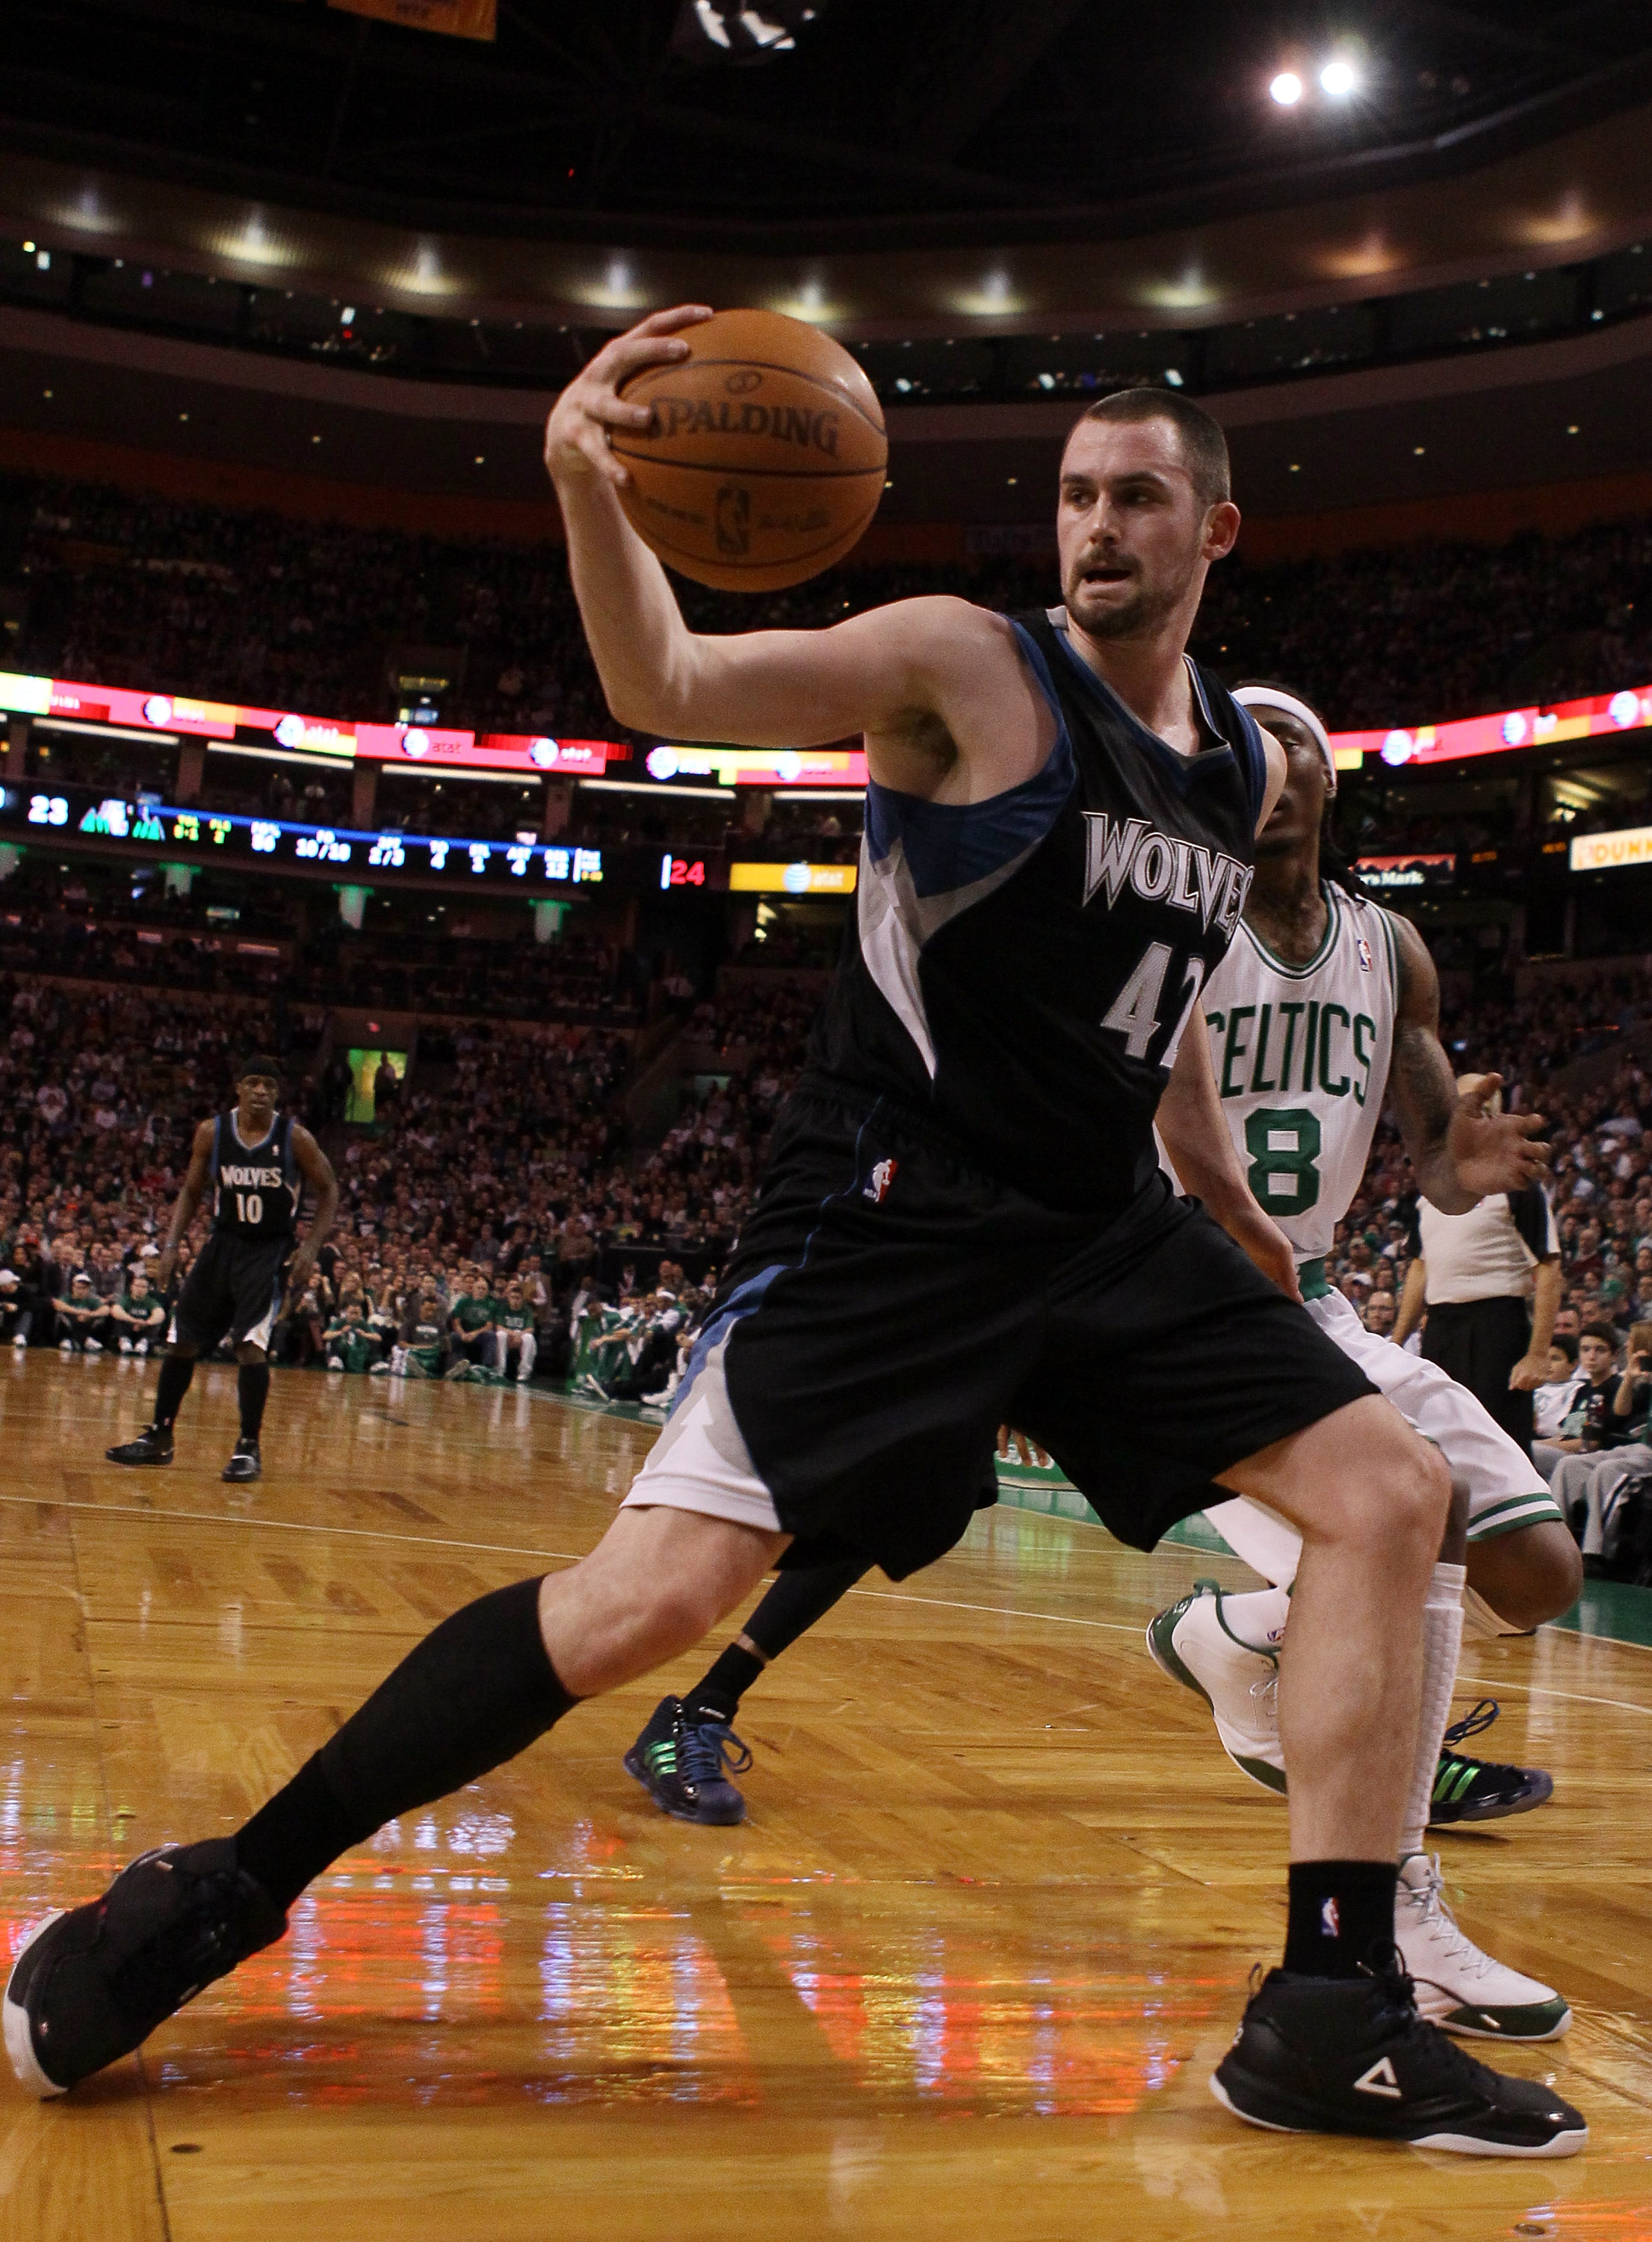 BOSTON, MA - JANUARY 03:  Kevin Love #42 of the Minnesota Timberwolves grabs the loose ball as Marquis Daniels #8 of the Boston Celtics defends on January 3, 2011 at the TD Garden in Boston, Massachusetts. NOTE TO USER: User expressly acknowledges and agr